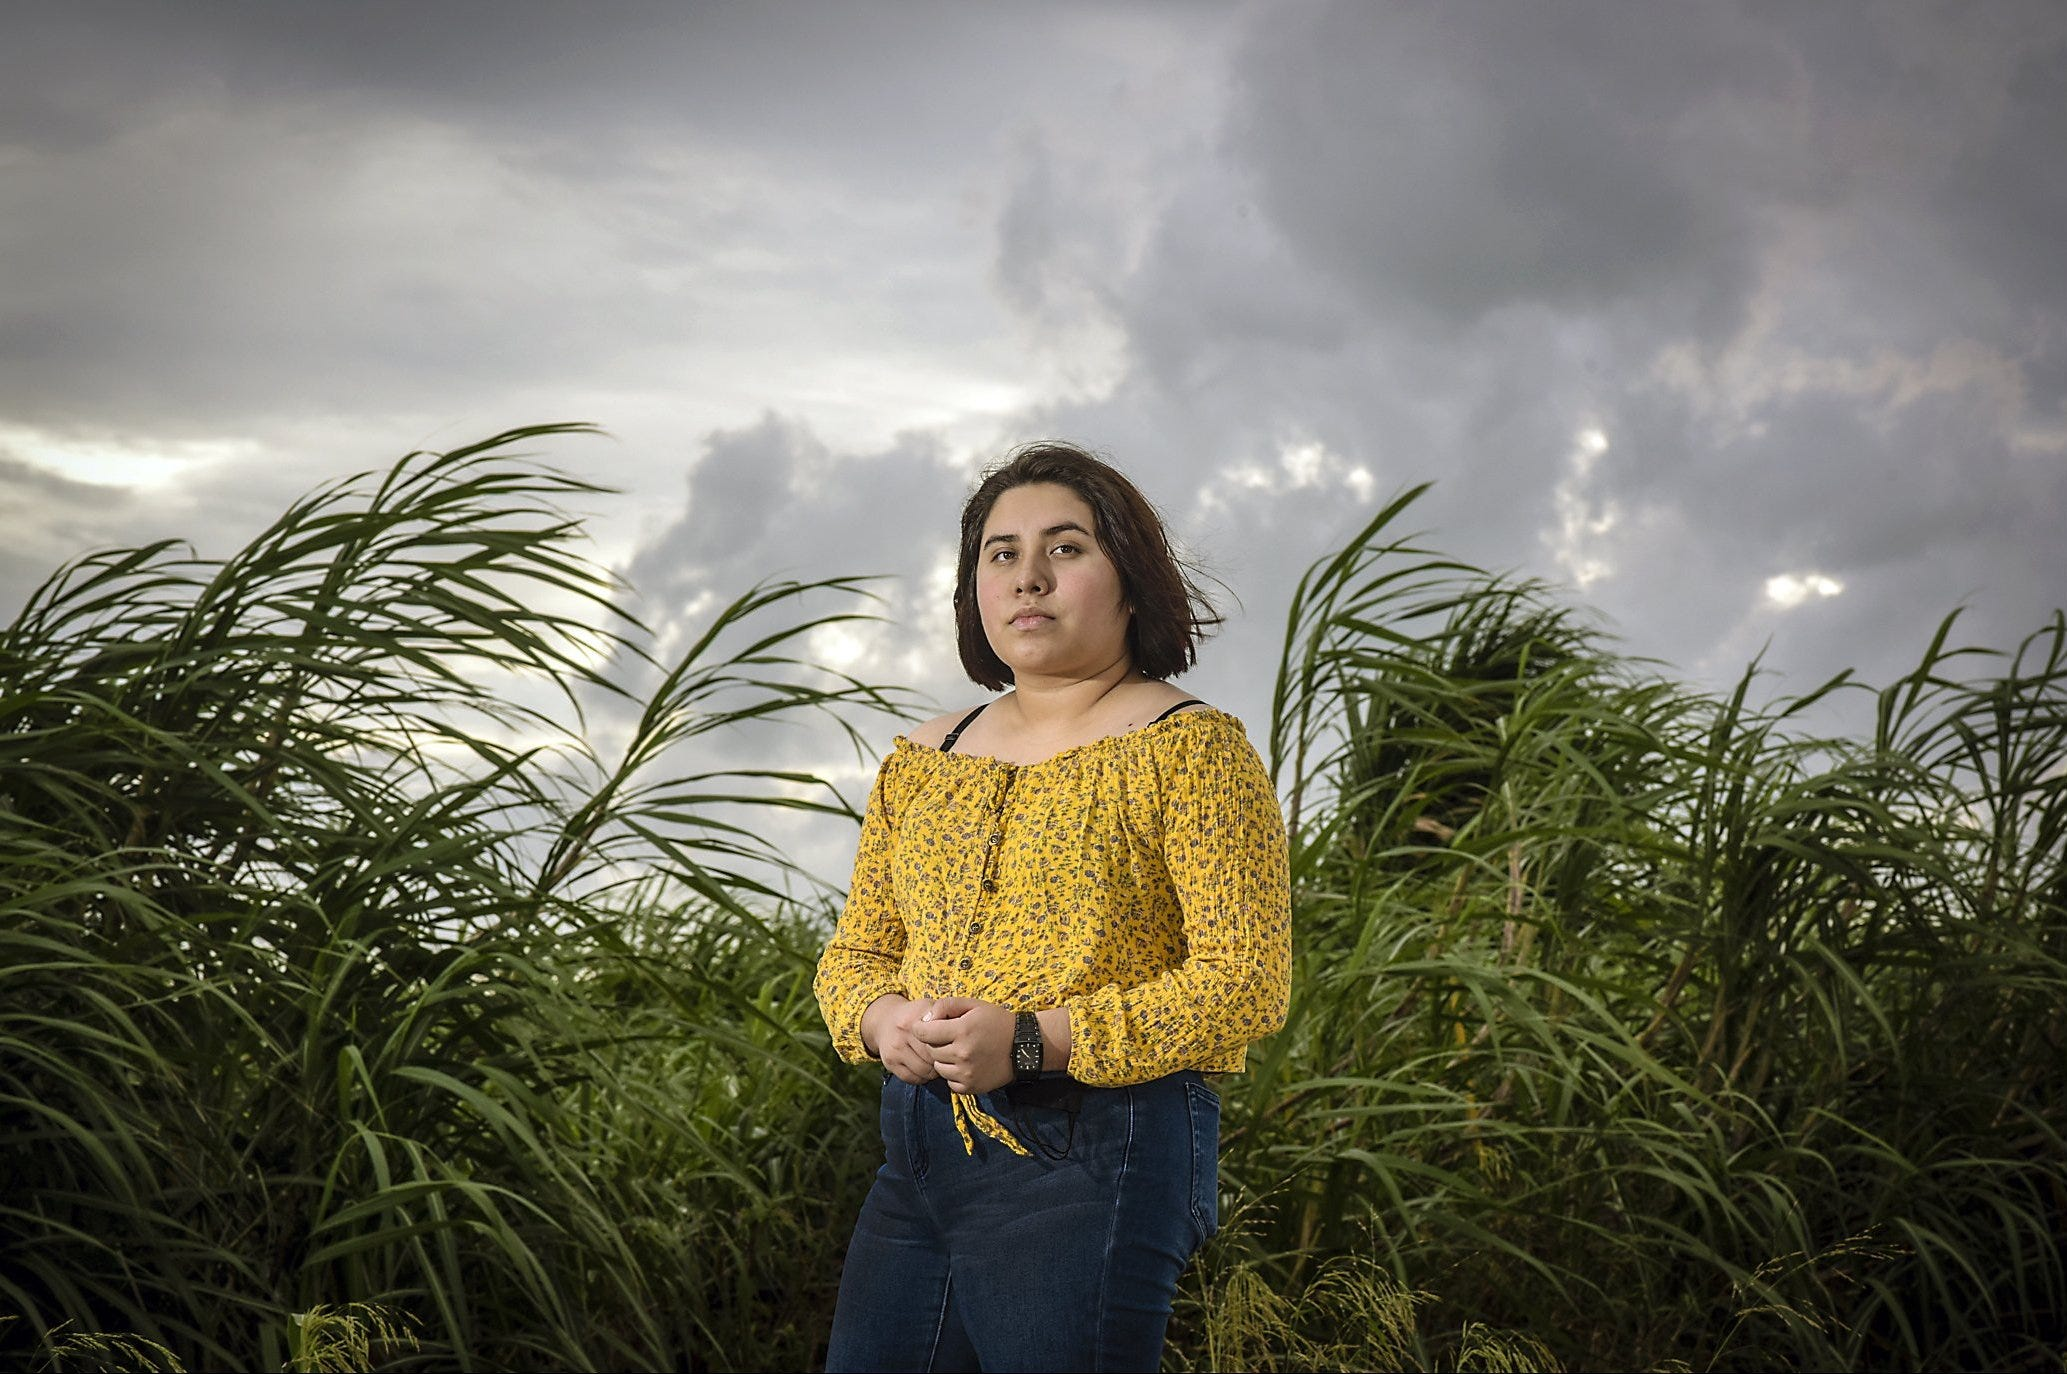 Jasmine Calderon drew motivation from teachers and mentors to successfully finish her senior year at Pahokee High in Palm Beach County.